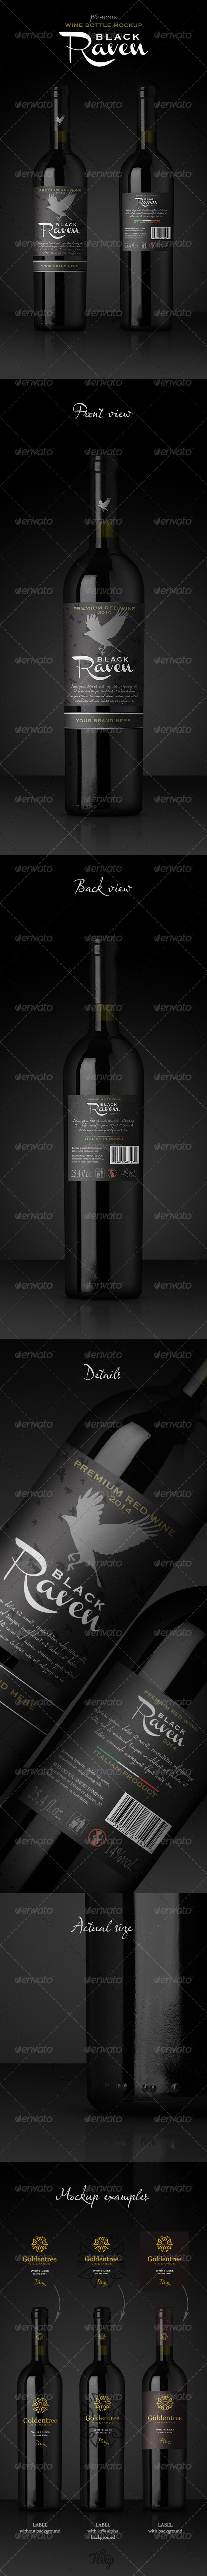 GraphicRiver Premium Wine Bottle Mockup 6711653